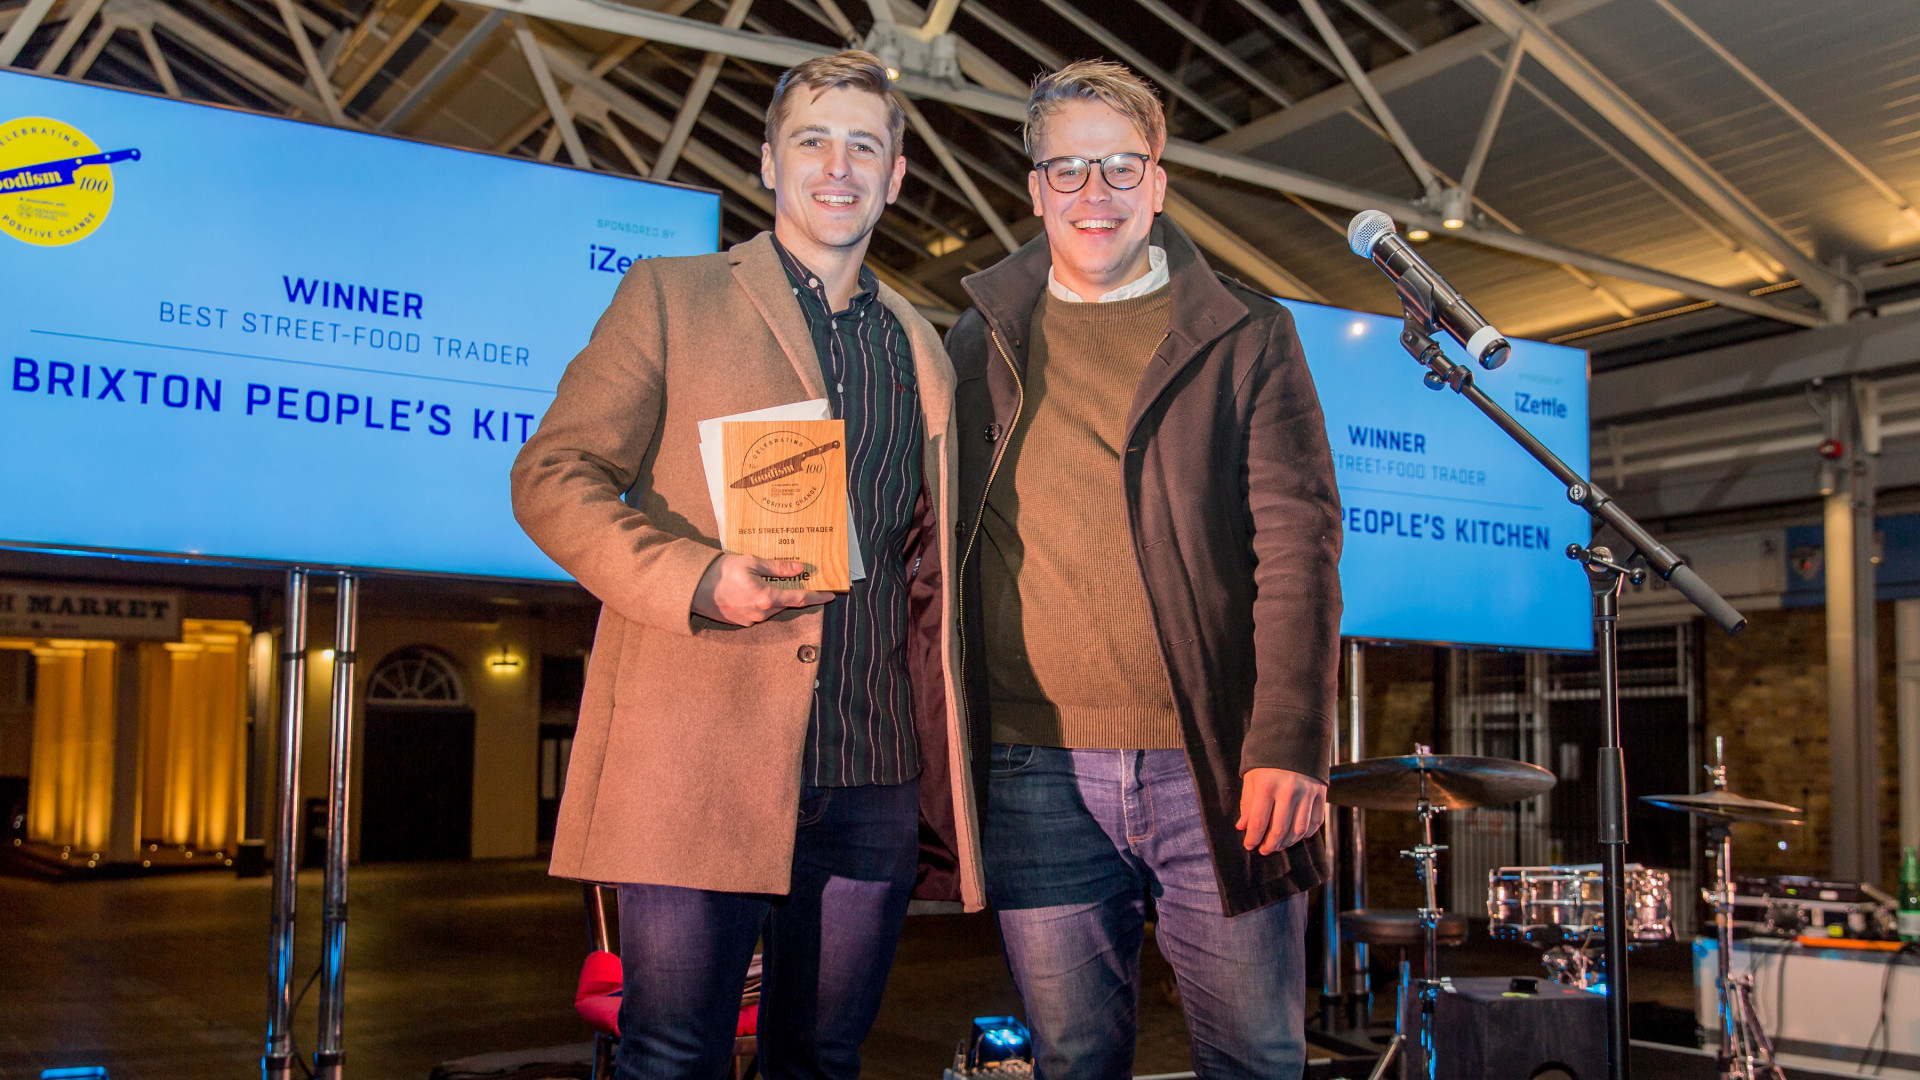 The Foodism 100 awards night 2019: Brixton People's Kitchen wins Best Street-Food Trader